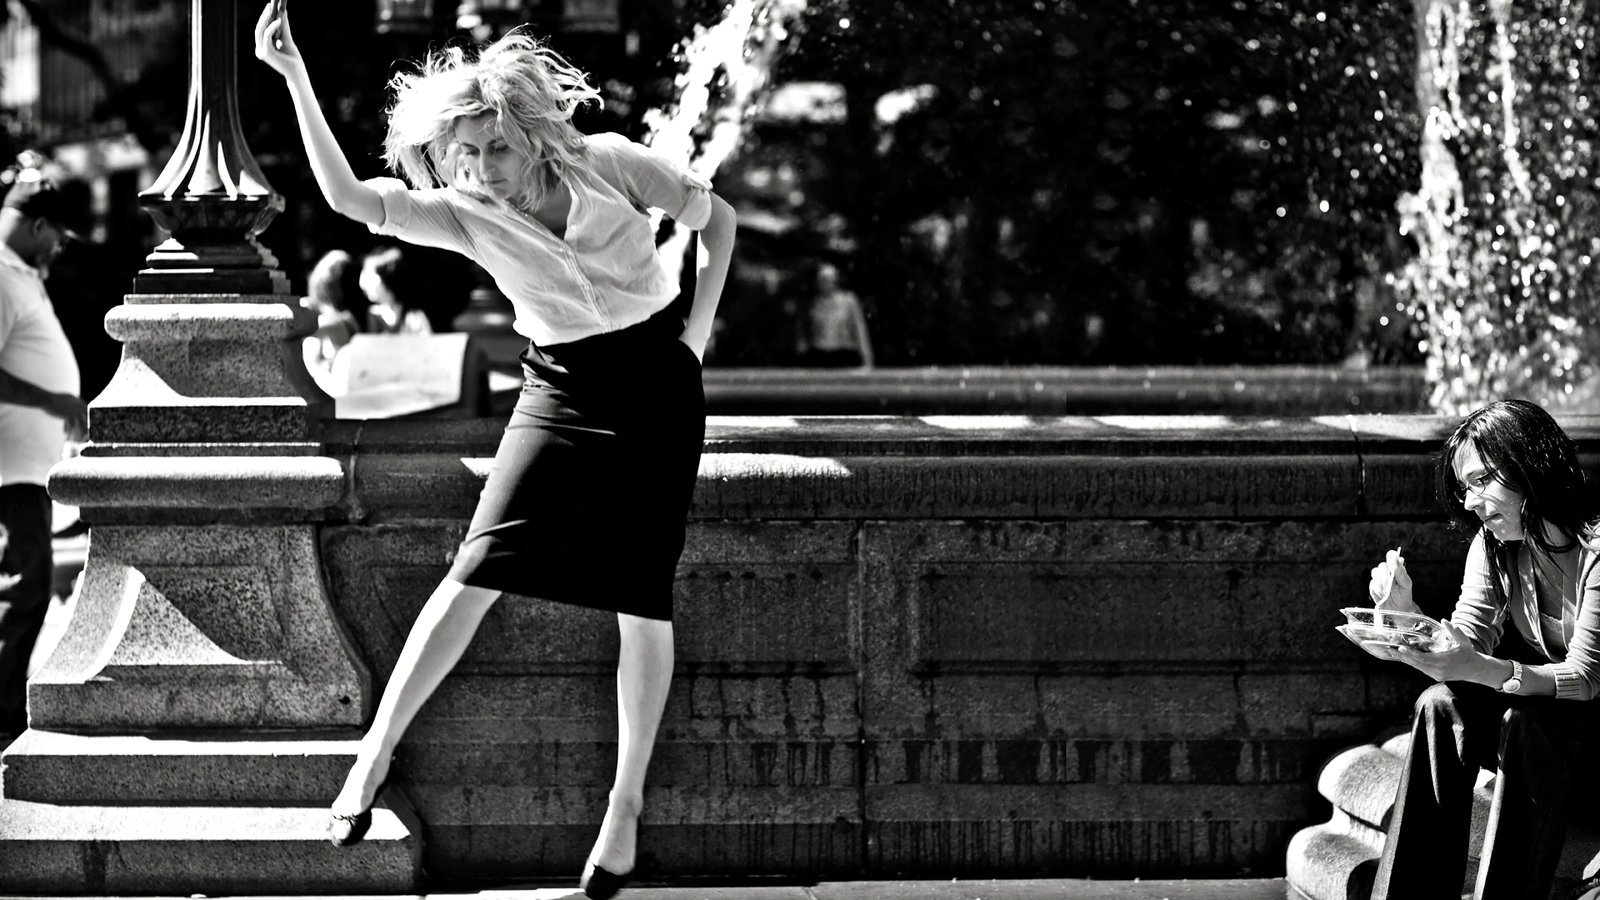 frances-ha-watching-recommendation-videoSixteenByNineJumbo1600